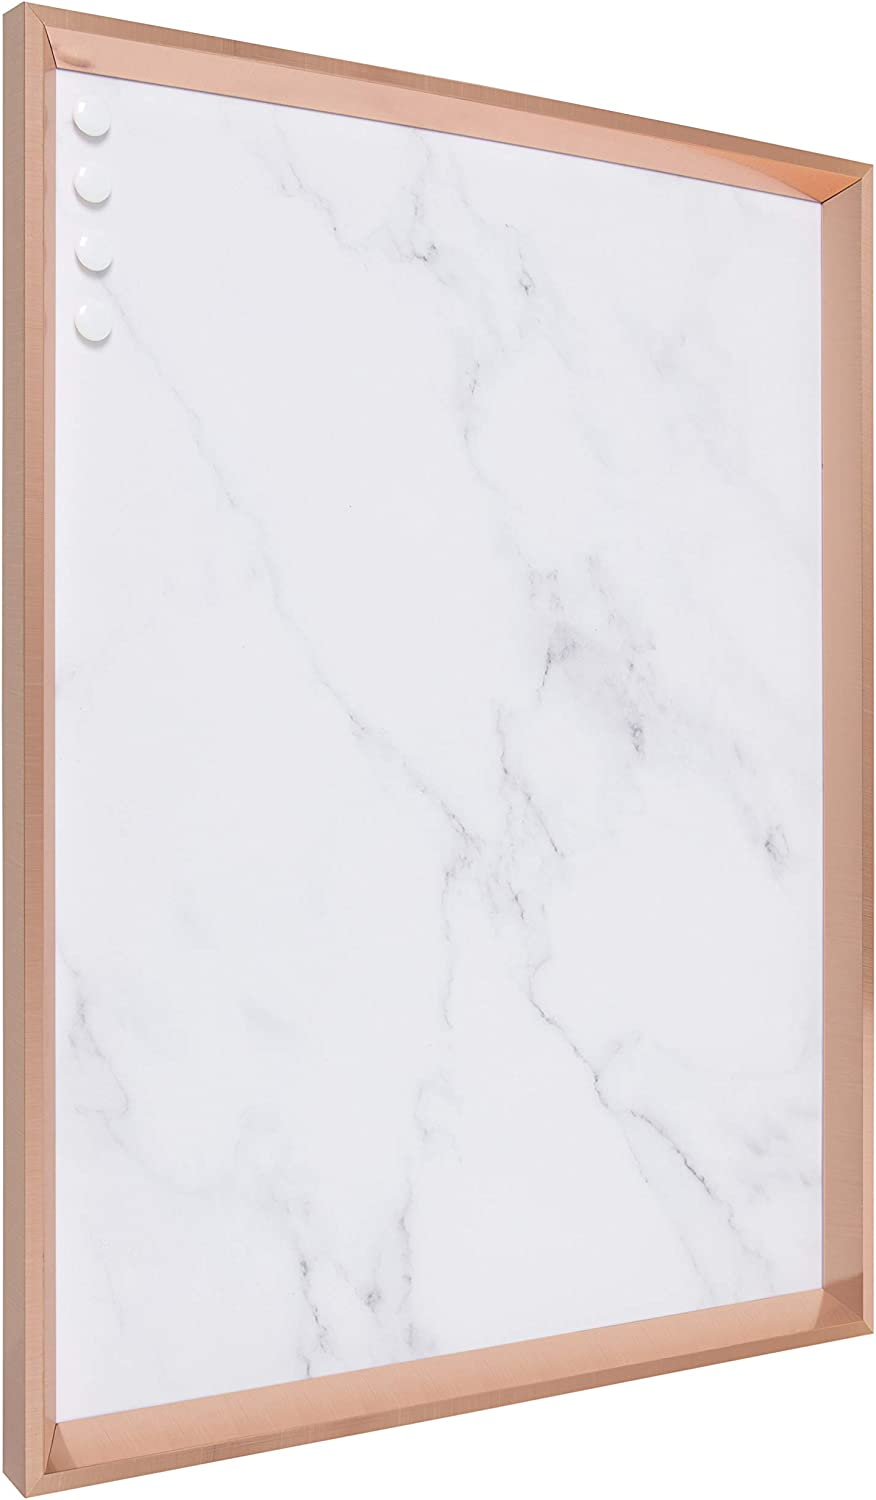 Kate and Laurel Calter Framed Decorative Magnetic Bulletin Board with Classic Glam Cararra Marble Design, 21.5x27.5, Rose Gold